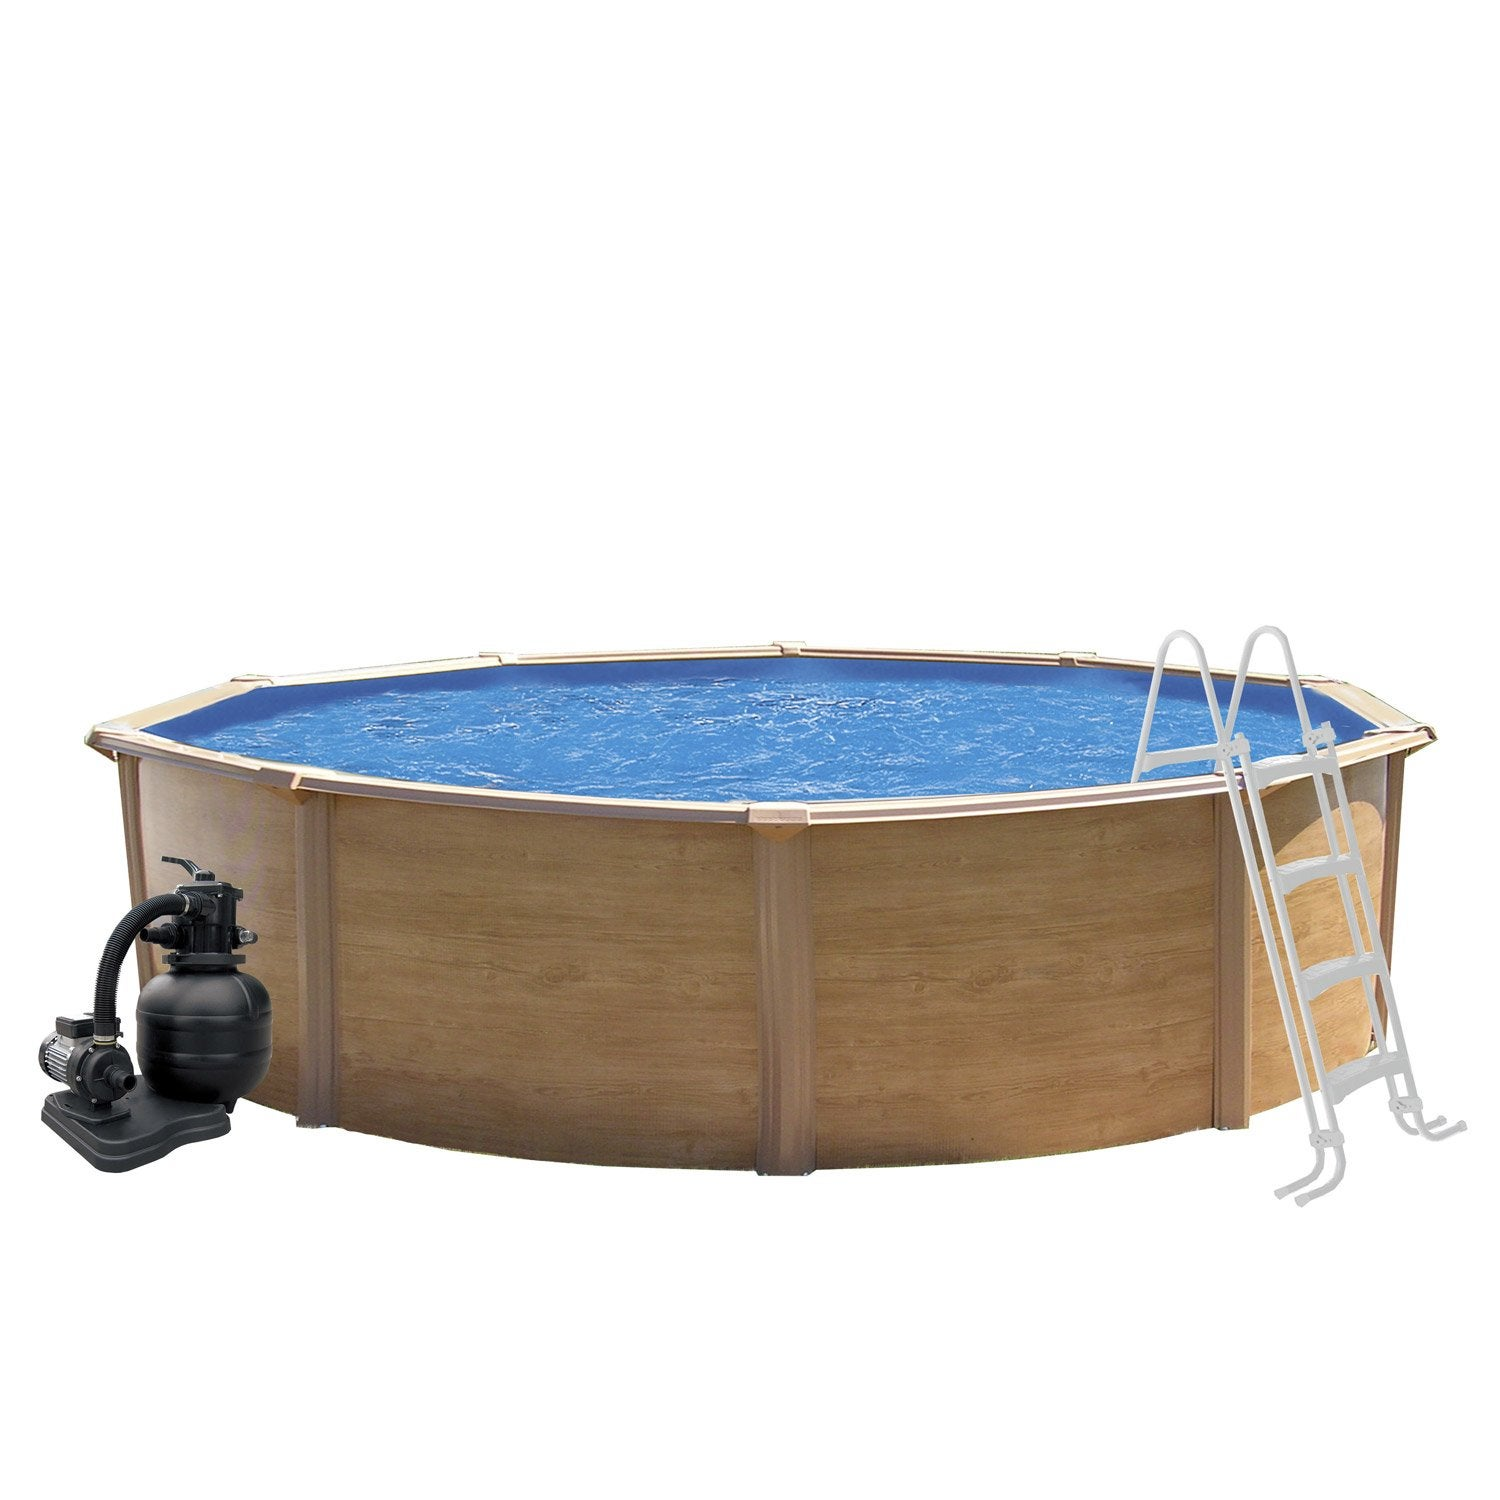 Piscine hors sol acier trigano canyon rondem leroy merlin for Le roy merlin piscine